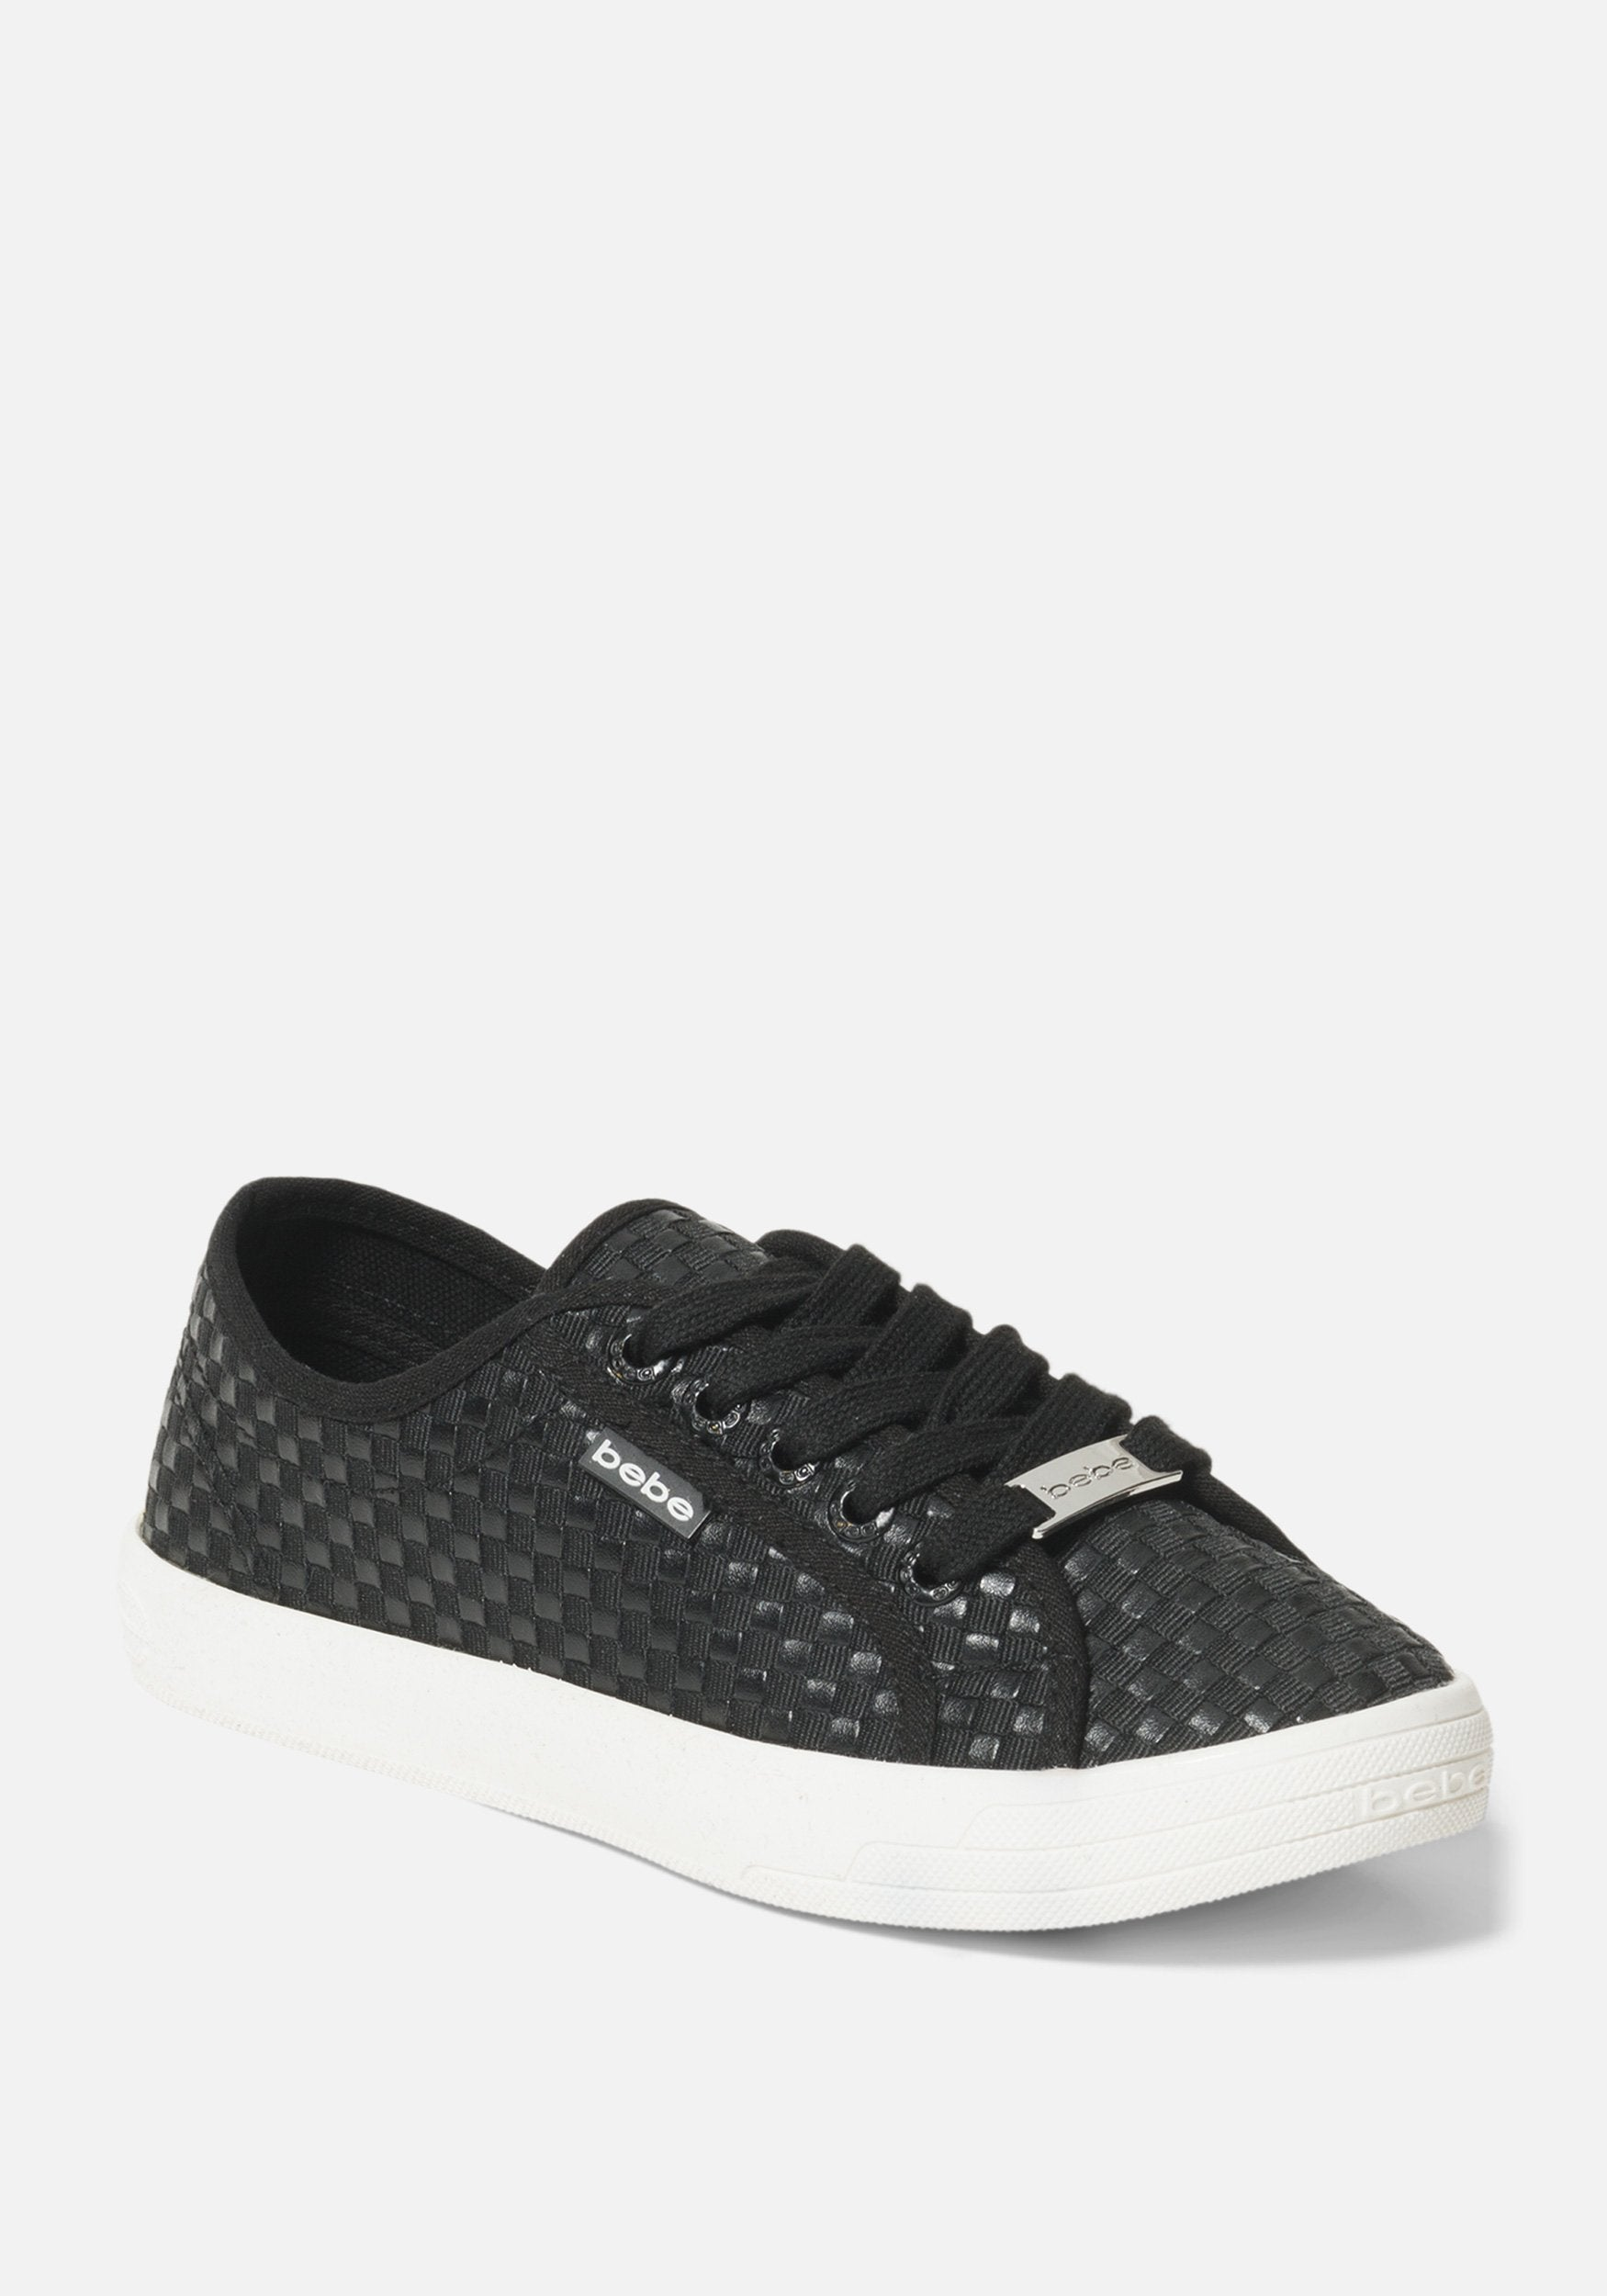 Bebe Women's Dorey Basketweave Sneakers, Size 6 in BLACK Synthetic